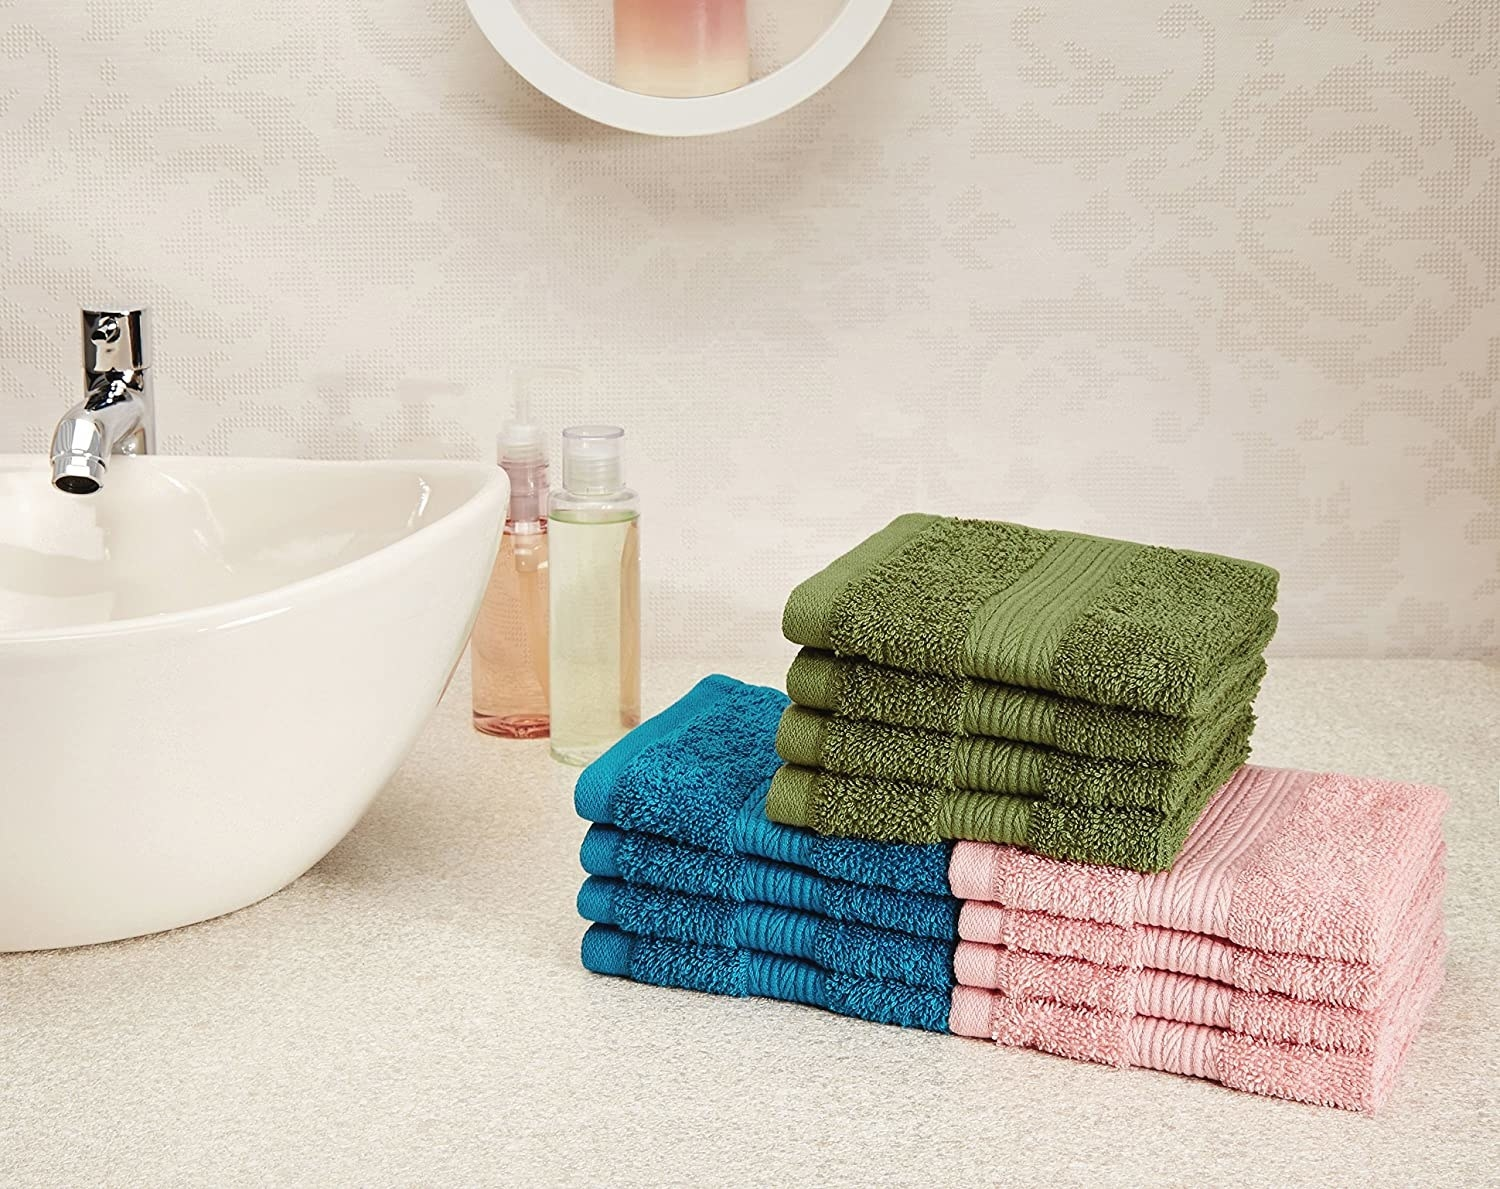 Pink, blue, and green hand towels stacked up next to a washbasin.